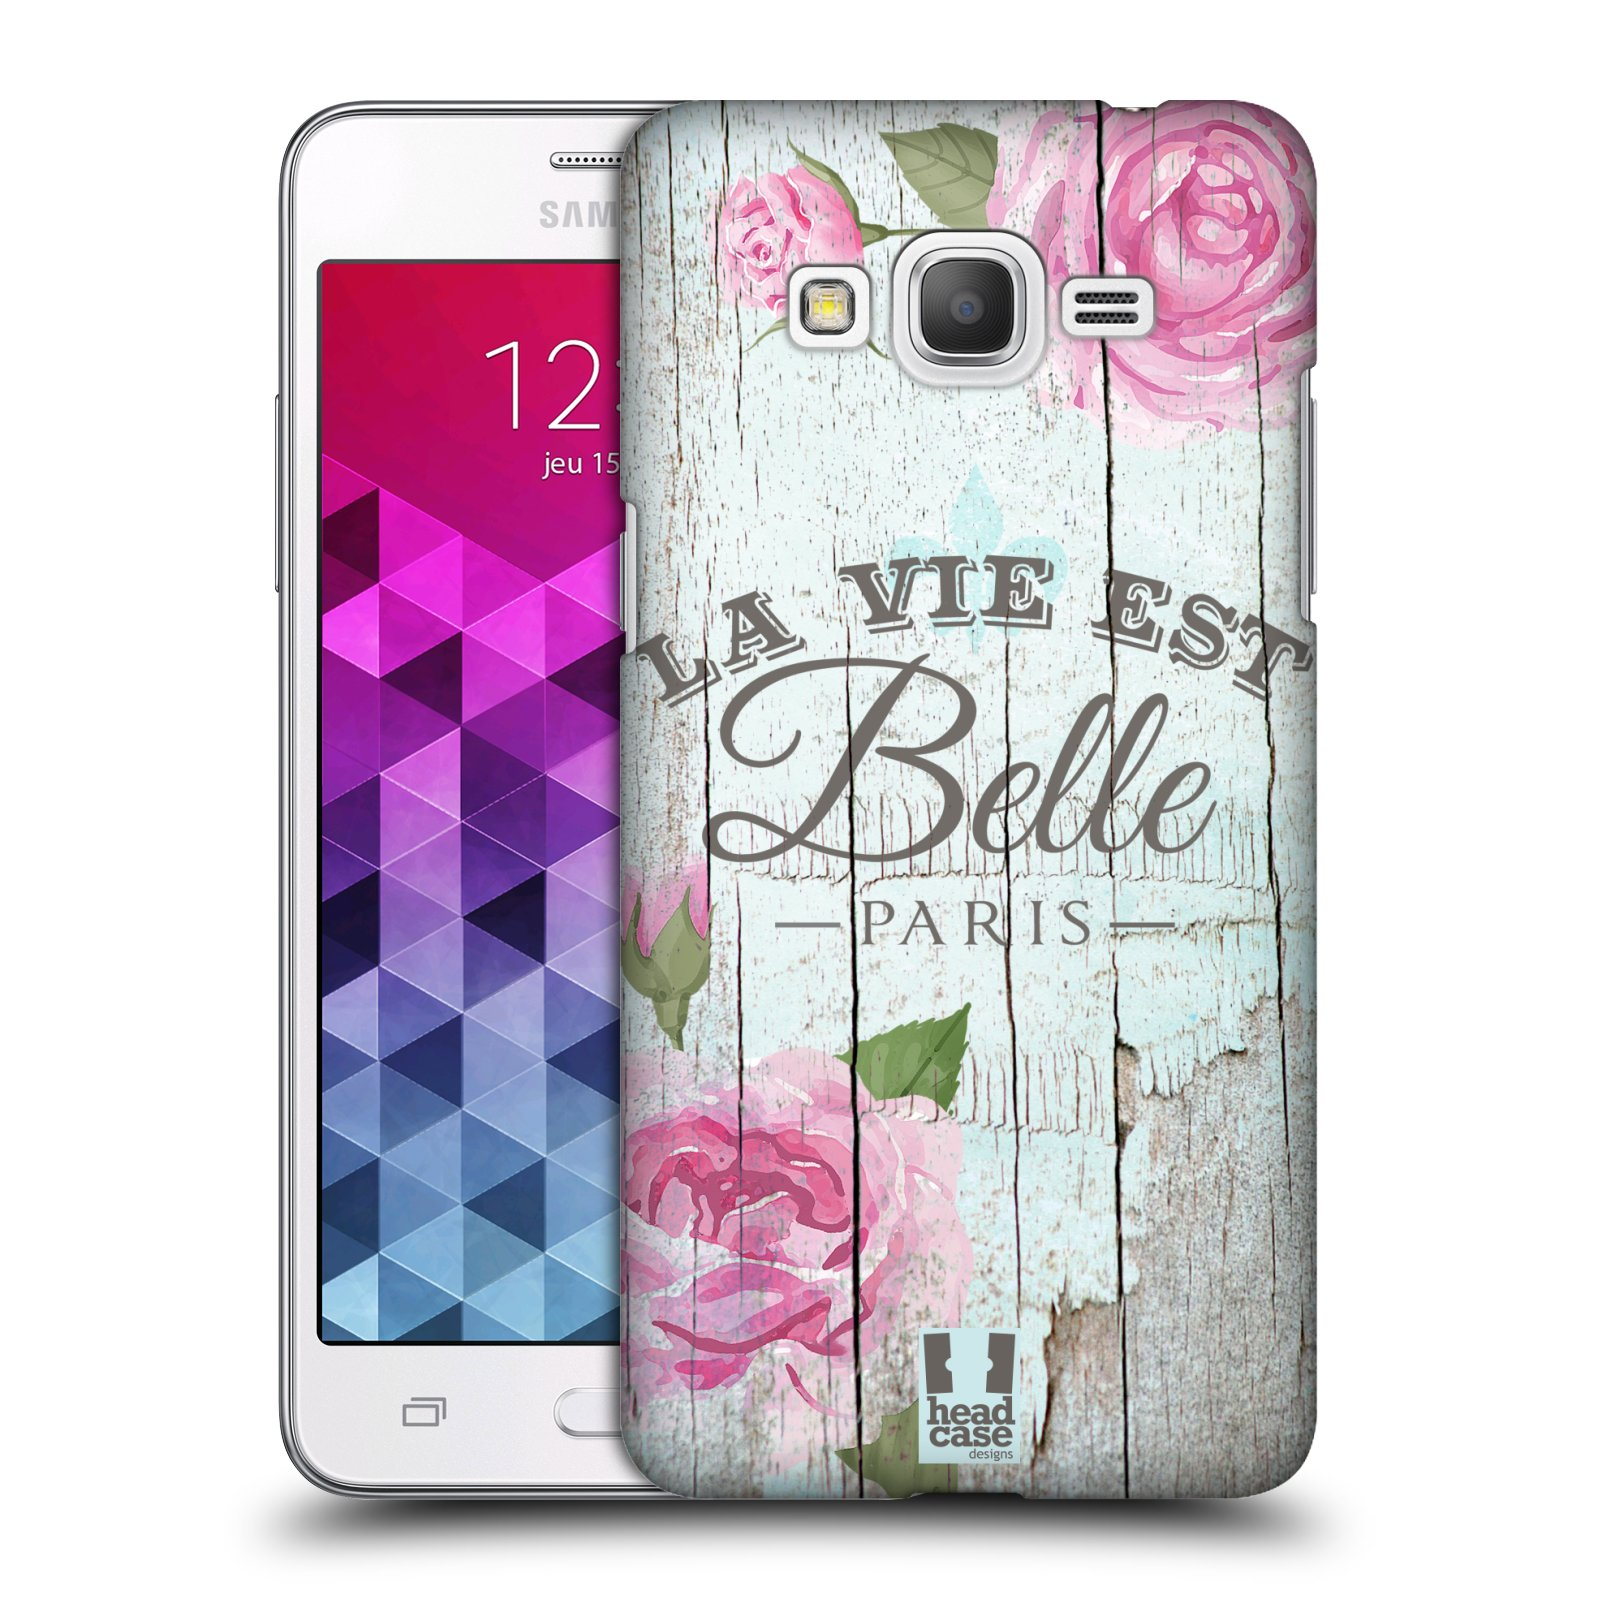 Plastové pouzdro na mobil Samsung Galaxy Grand Prime HEAD CASE LIFE IN THE COUNTRY BELLE